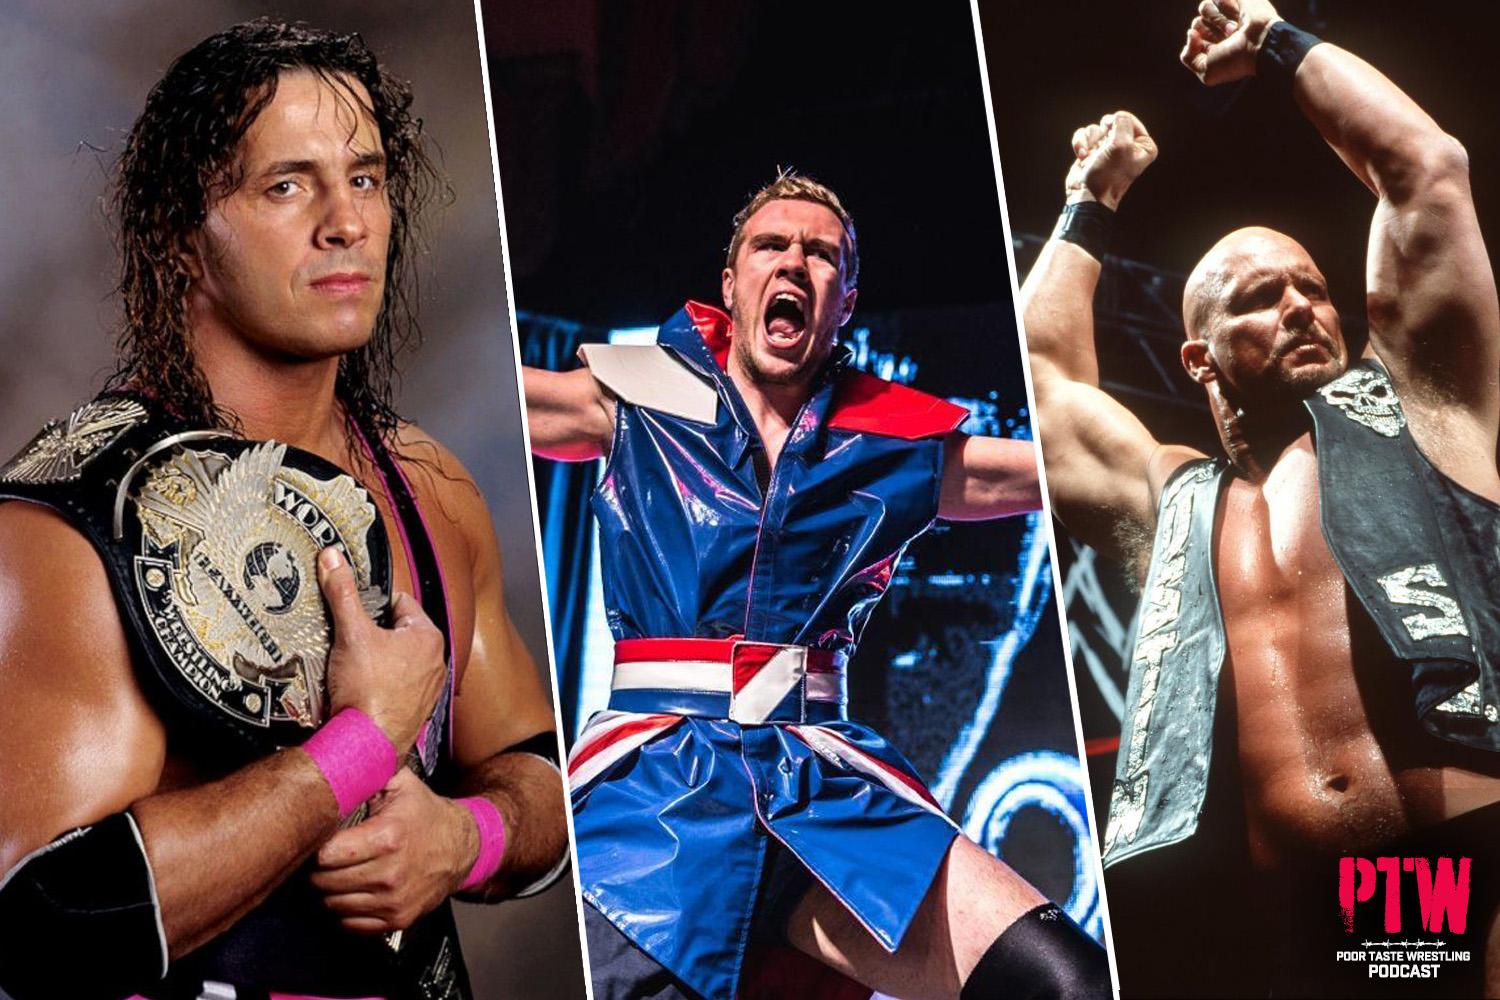 WrestleMania gets some major changes, empty arena wrestling is our new reality, and Bret Hart hates everything.